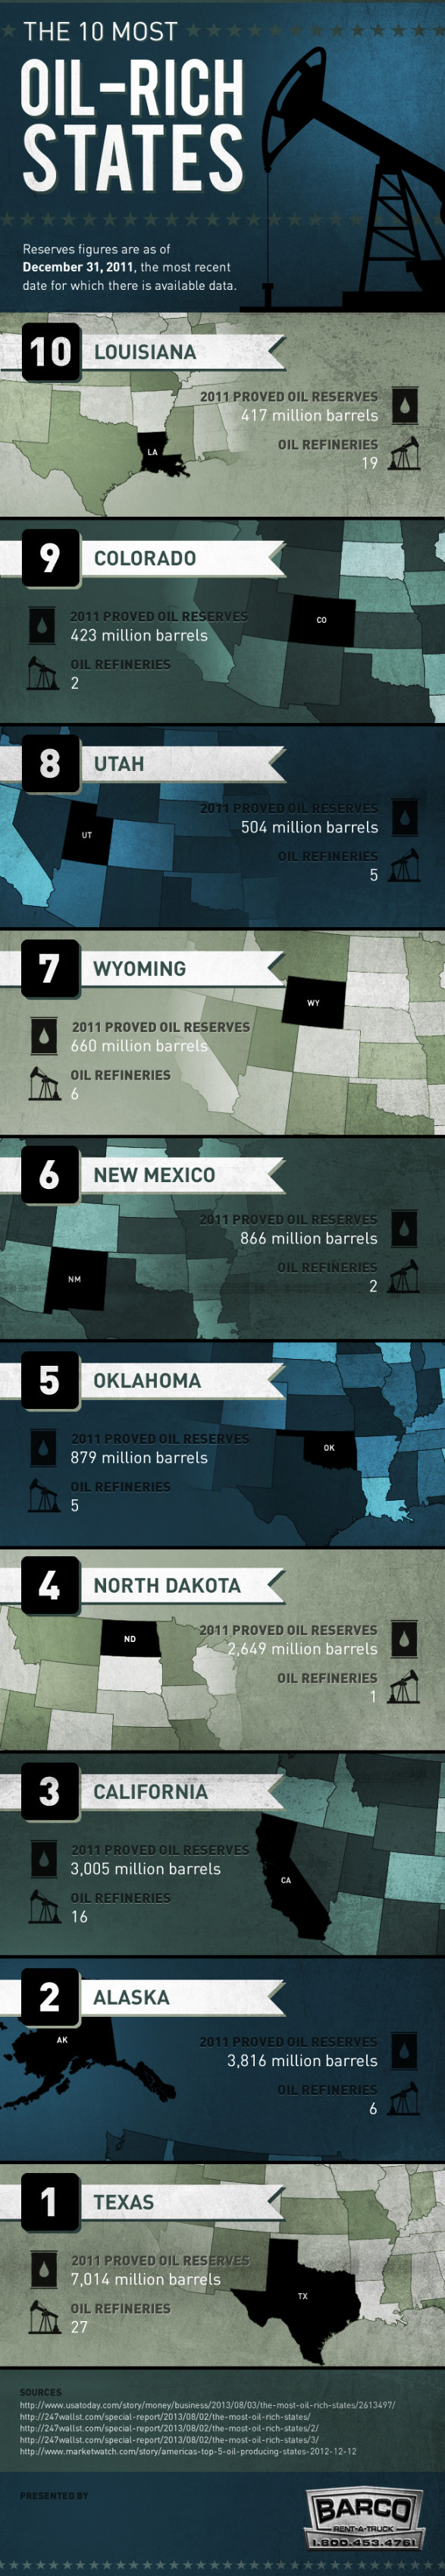 The 10 Most Oil-Rich States